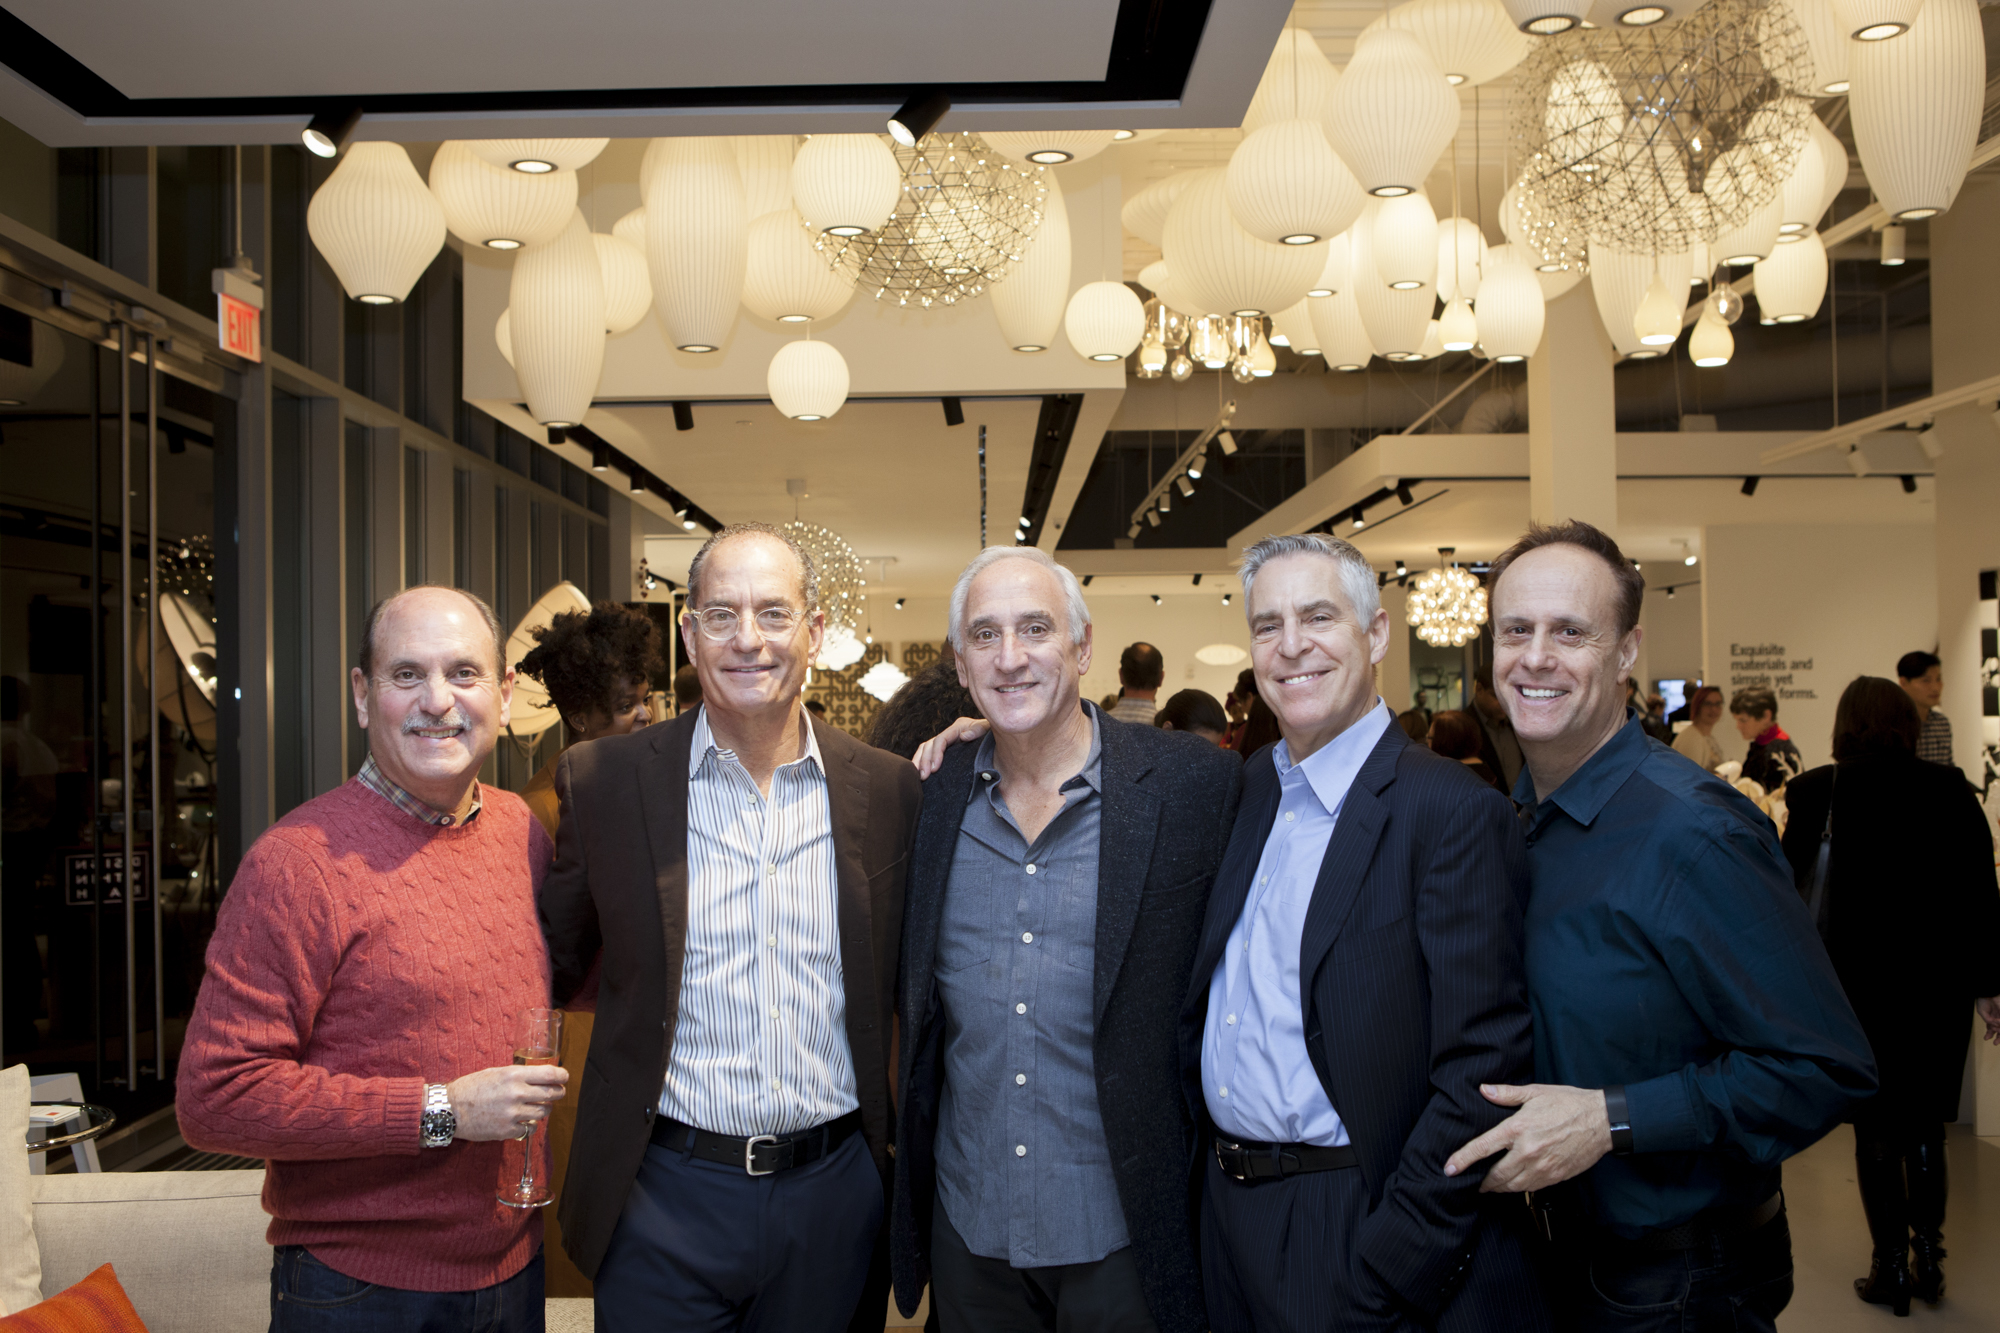 Robert Youngworth, Bruce Levenbrook, Evan Berenzweig, Lewis Orenstein and Marc Feinson